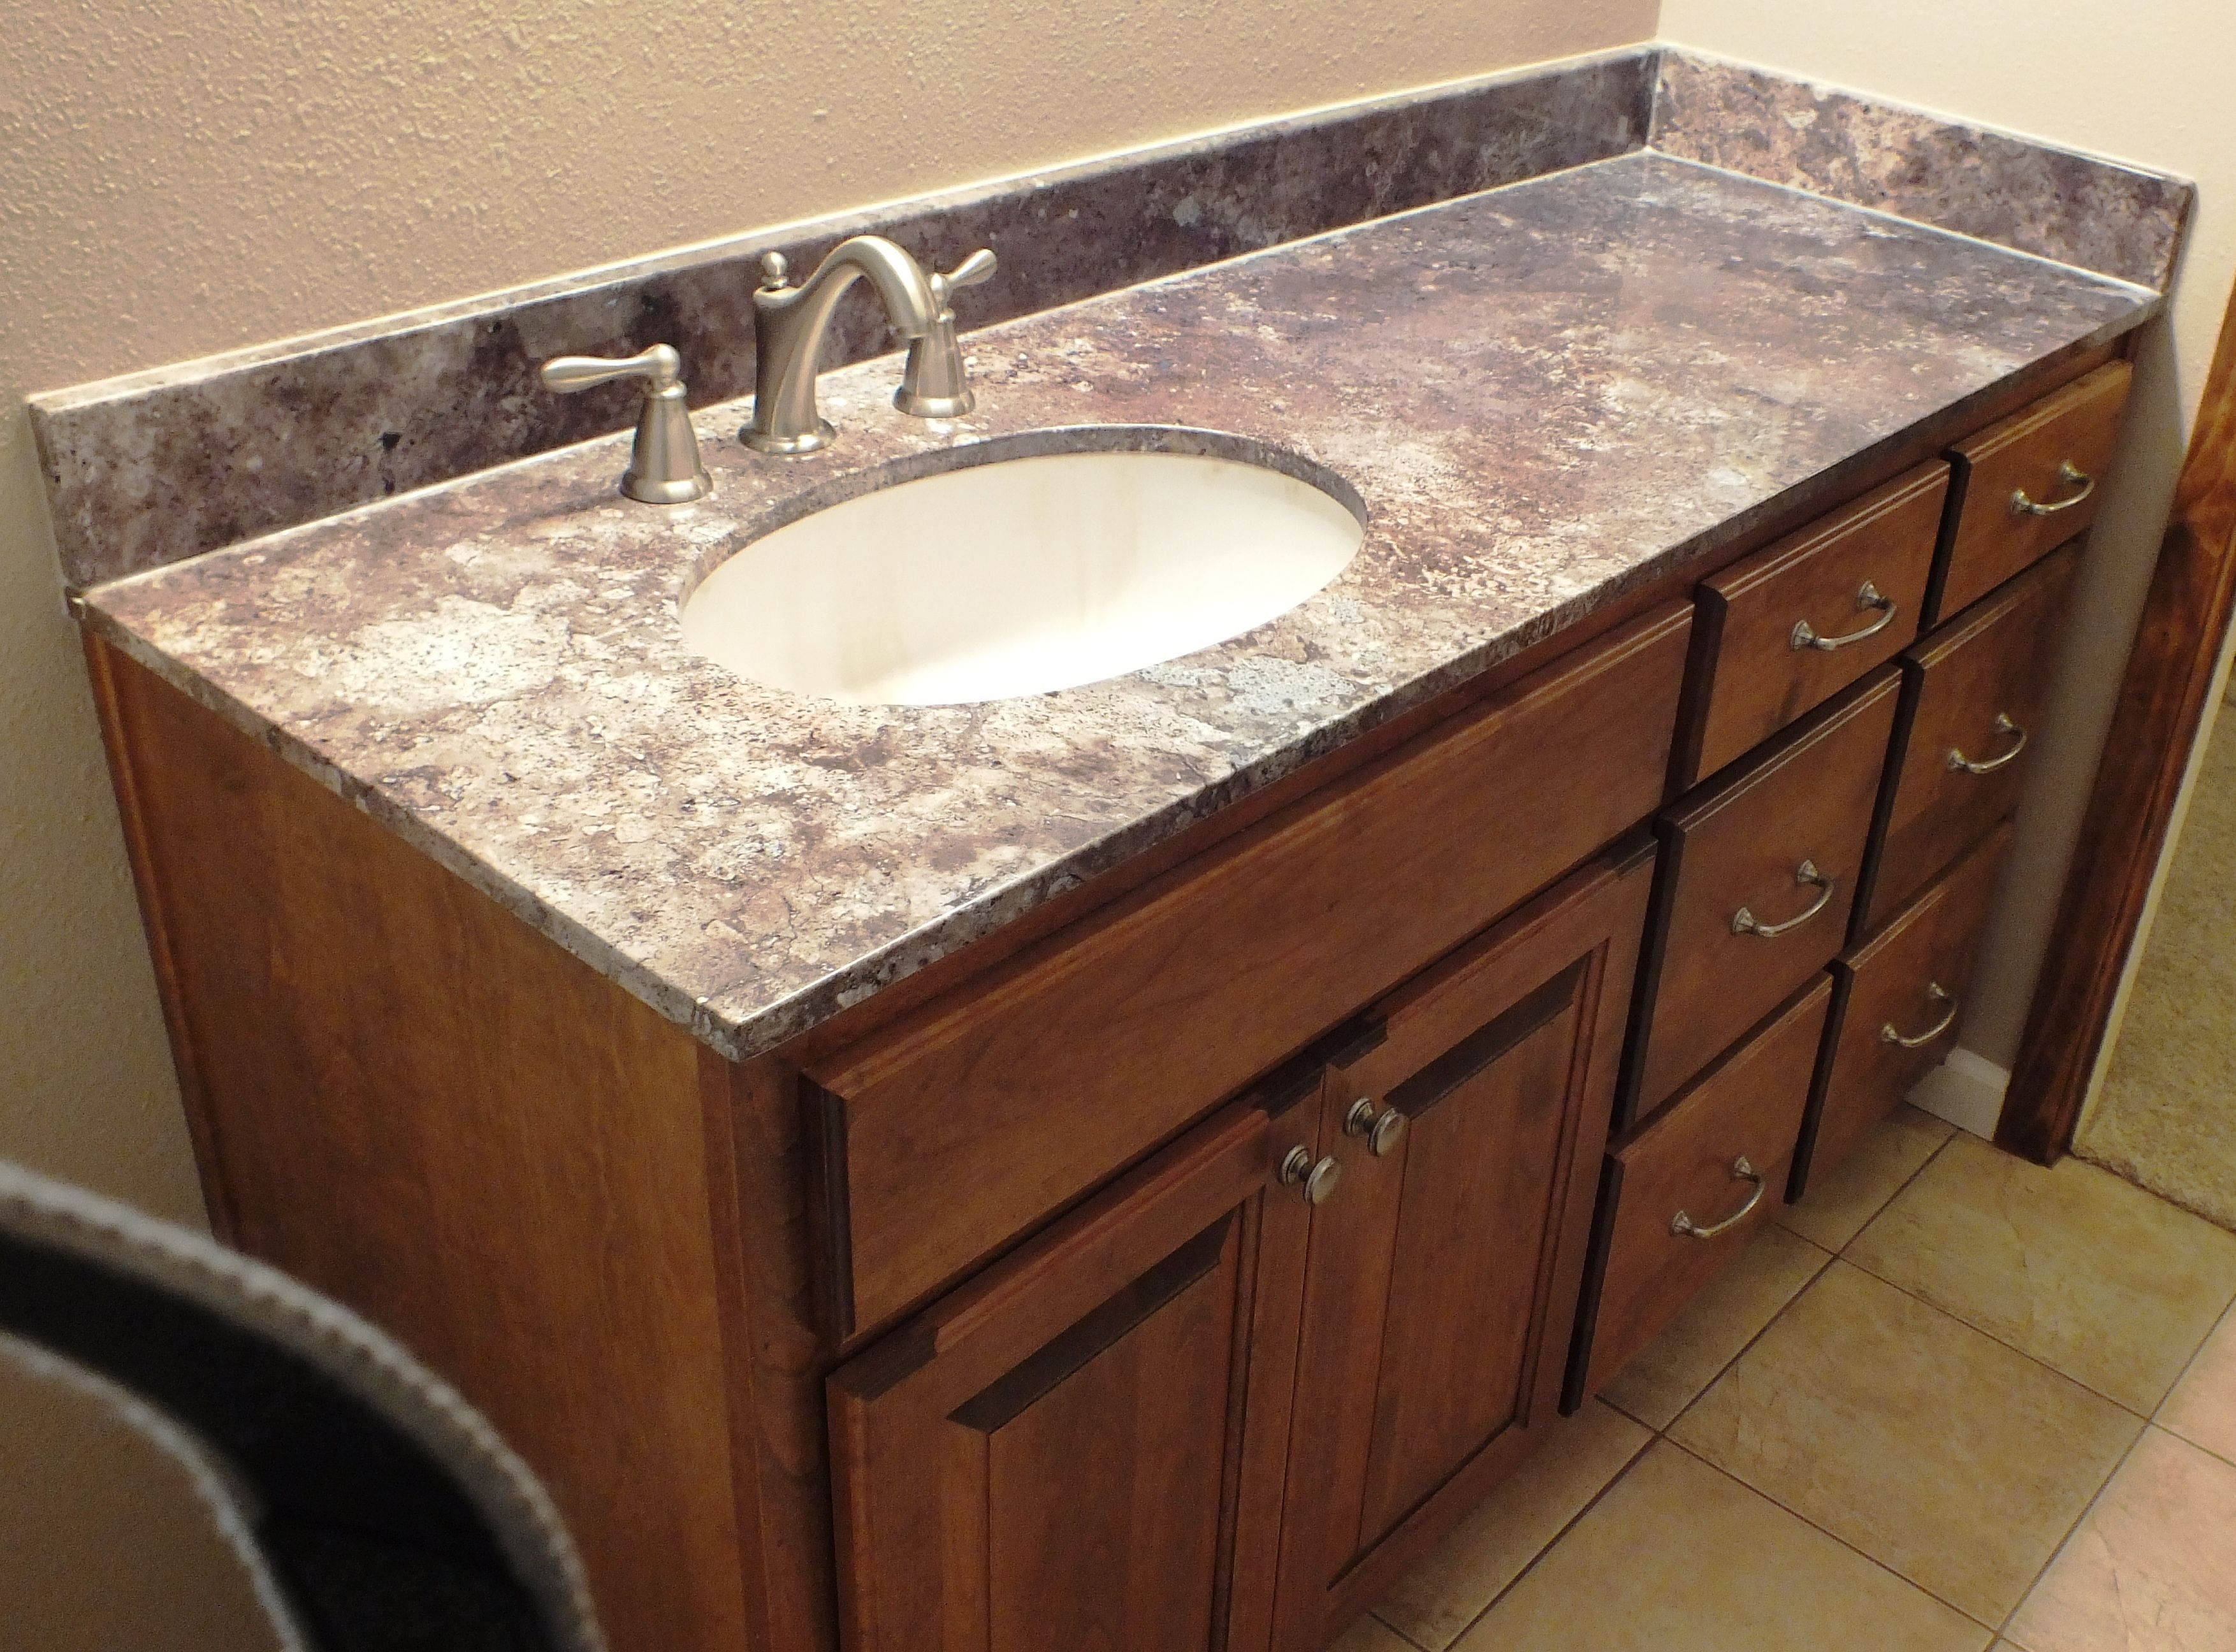 Abalone Travertine Vanity Top With Burnt Almond Under Mount Sink Bowl And  Brushed Nickel Faucets